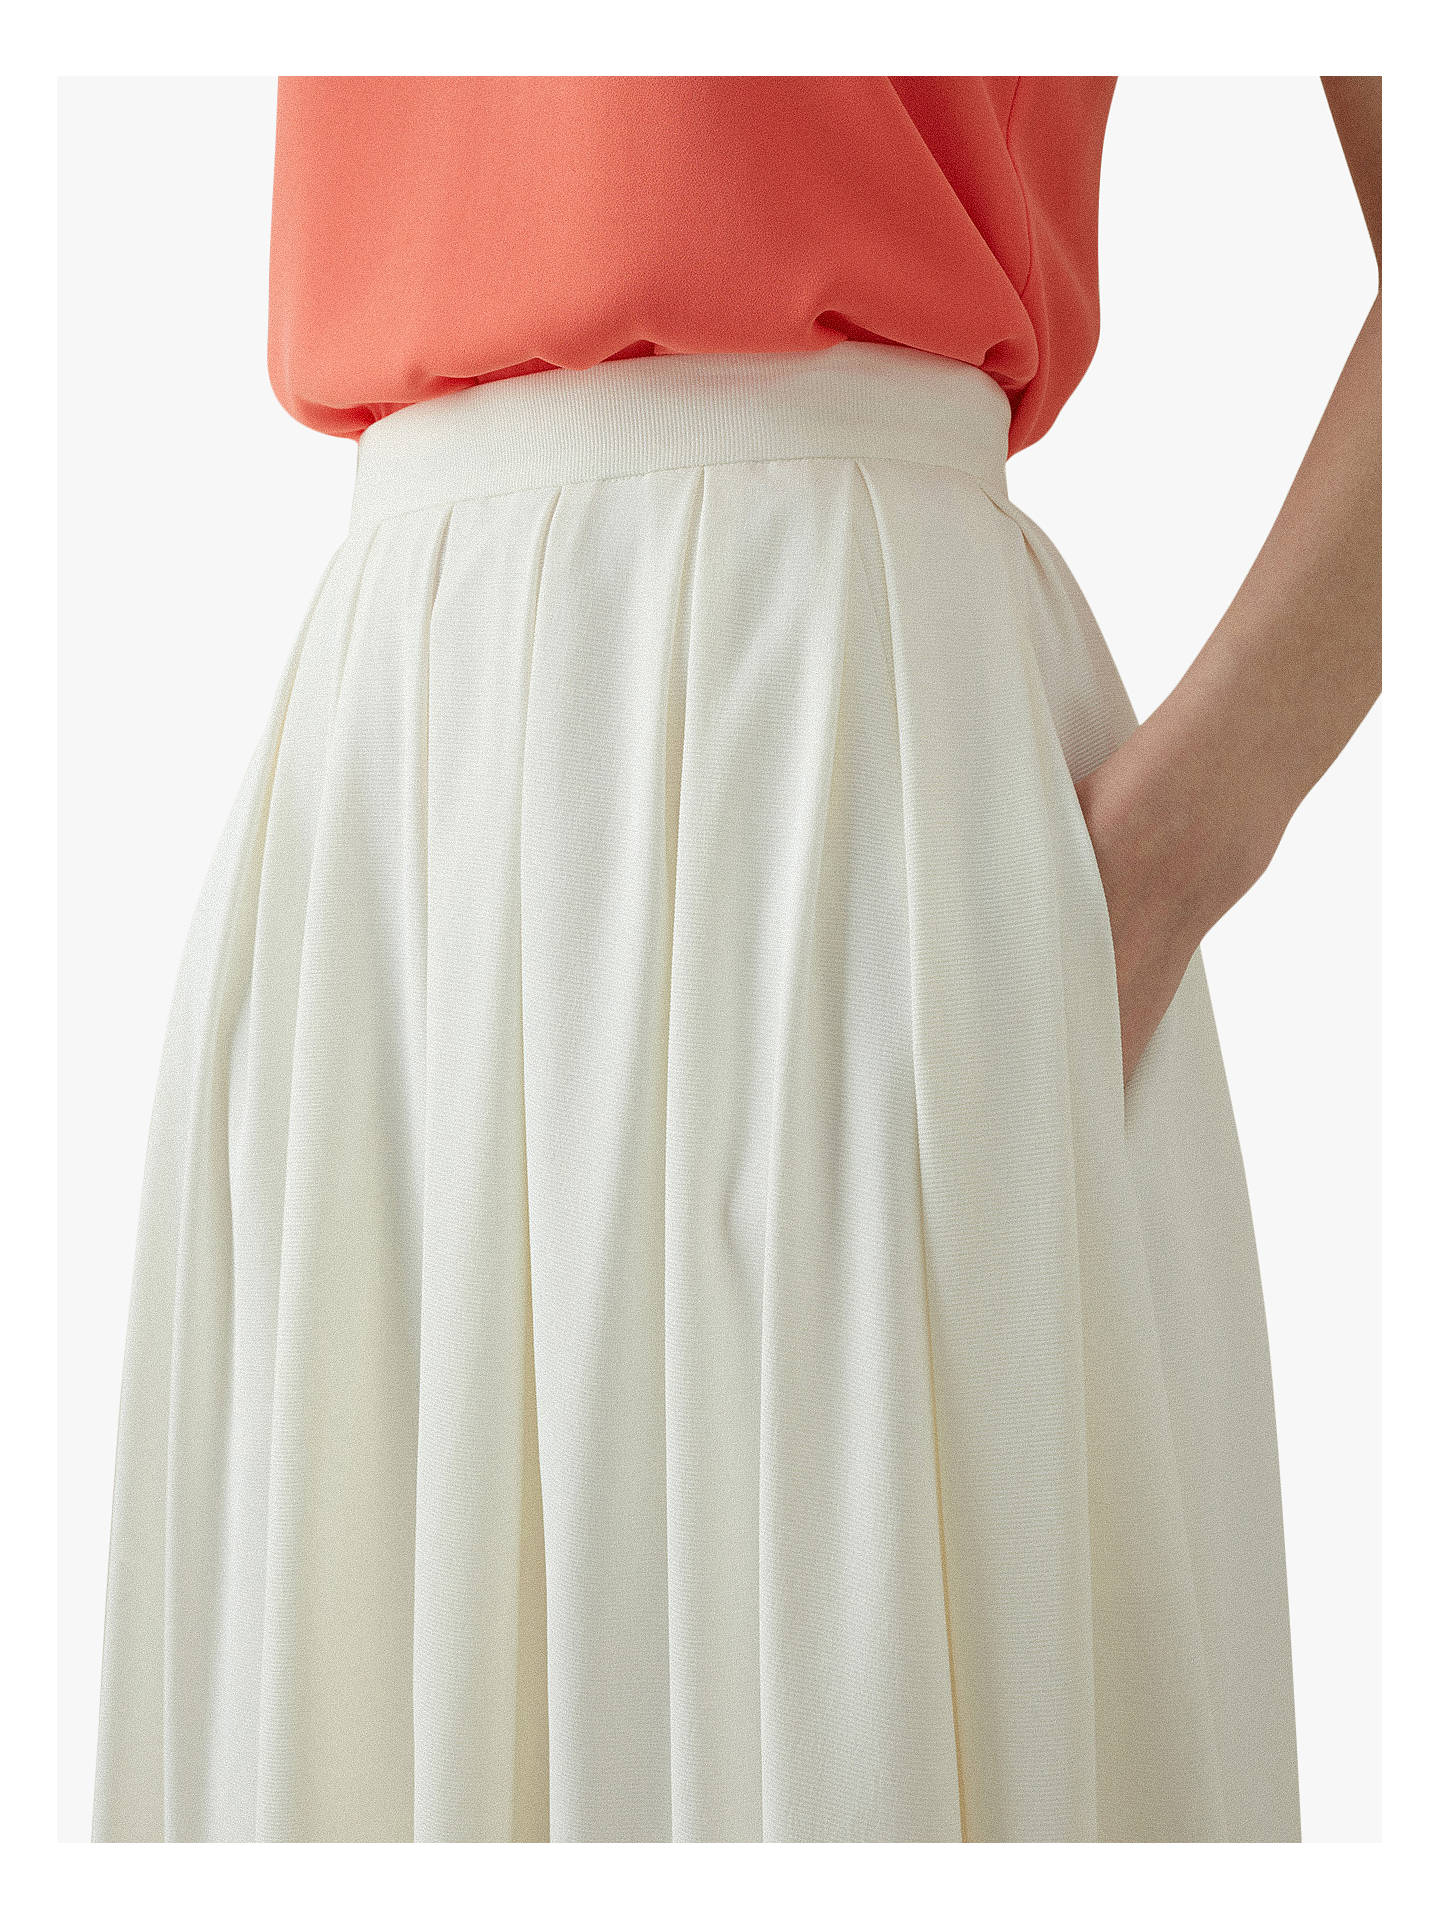 bd4607903c6f ... Buy Karen Millen Softly Pleated Midi Skirt, Ivory, 6 Online at  johnlewis.com